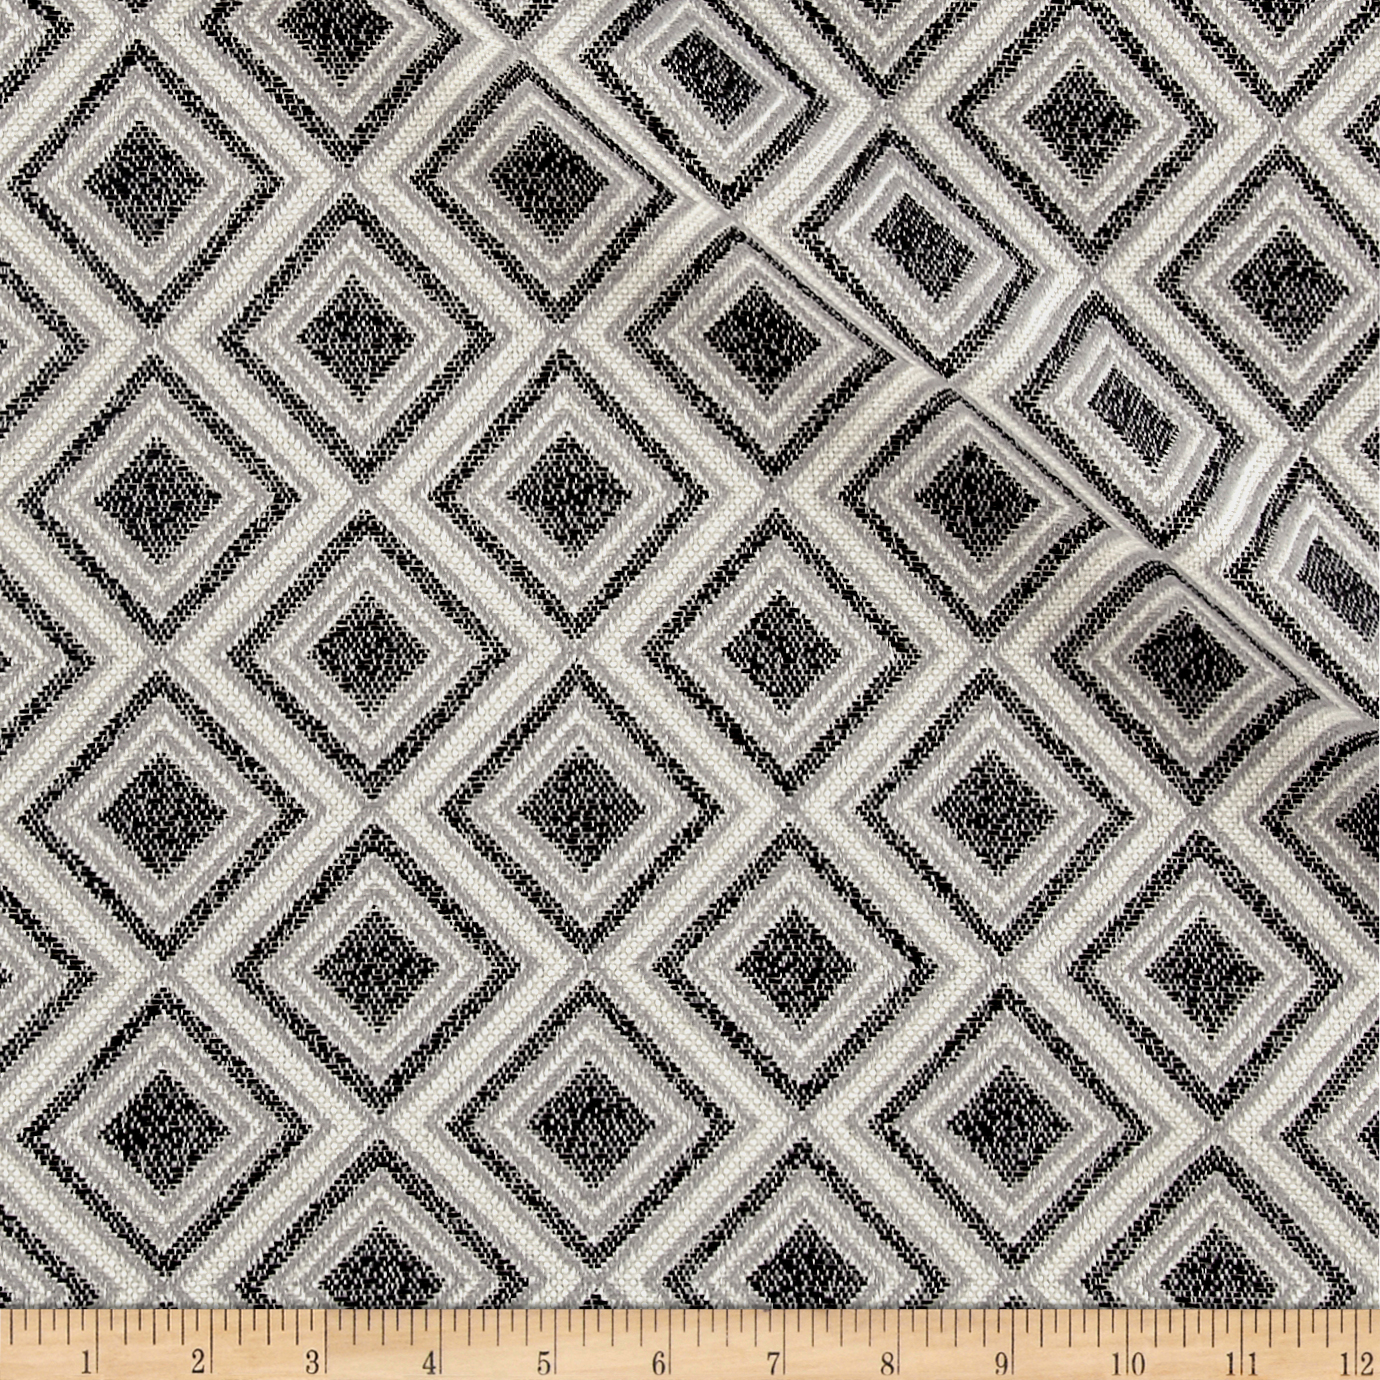 Kelly Ripa Home Chenille Jacquard Game On Ebony Fabric by Waverly in USA